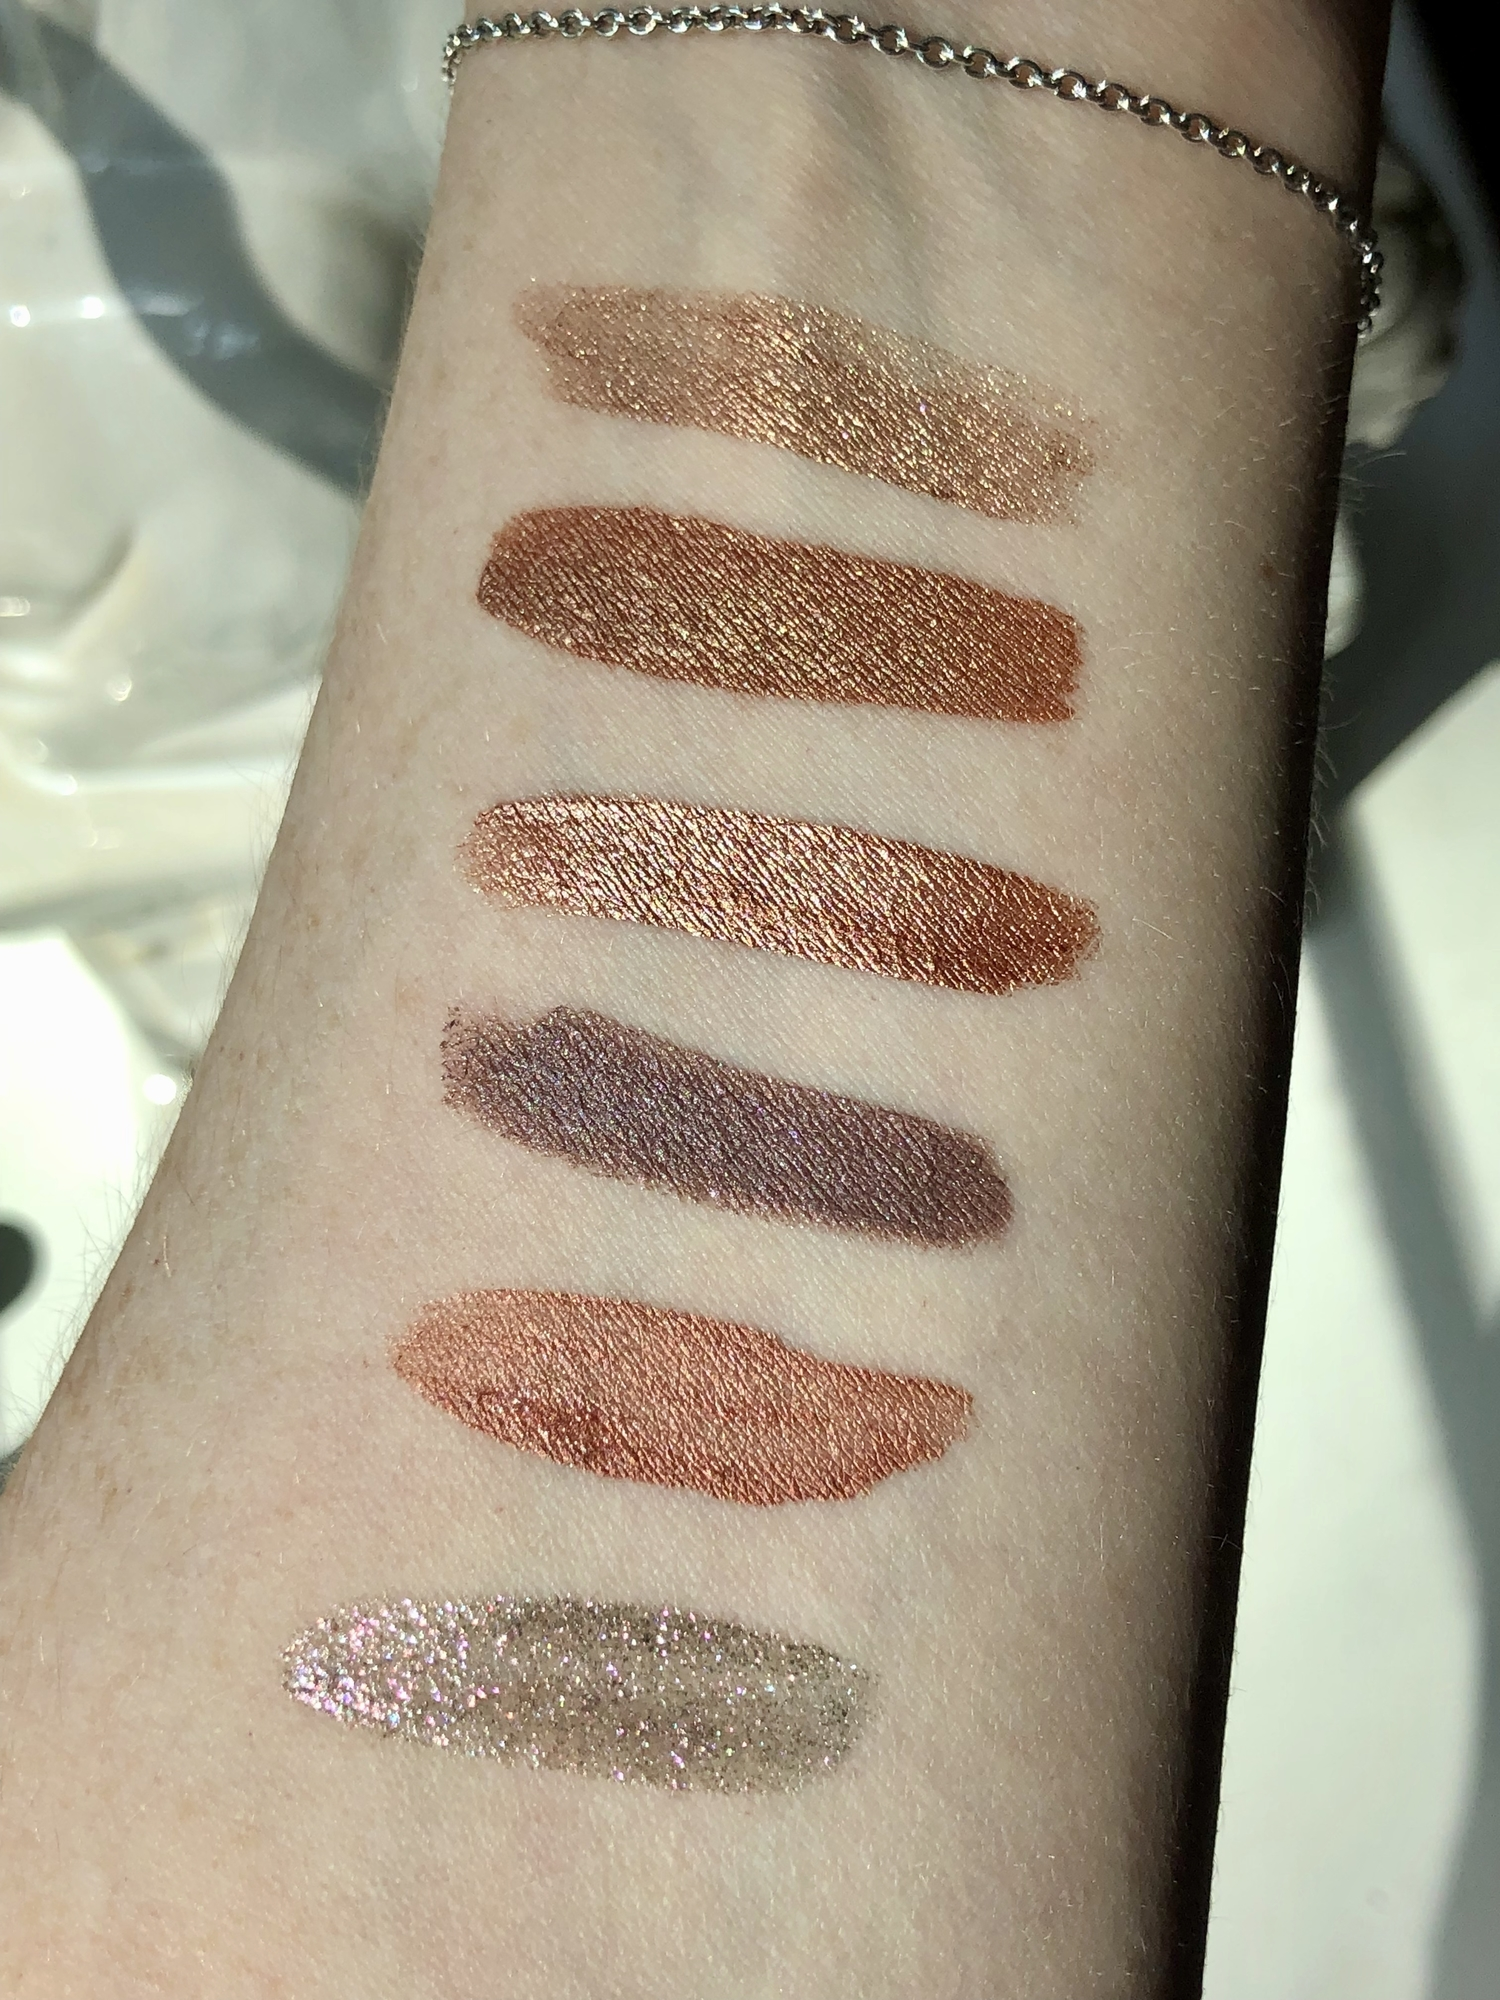 Swatches of all my liquid eyeshadows from Kosas, Dome Beauty, Flower Beauty & ILIA